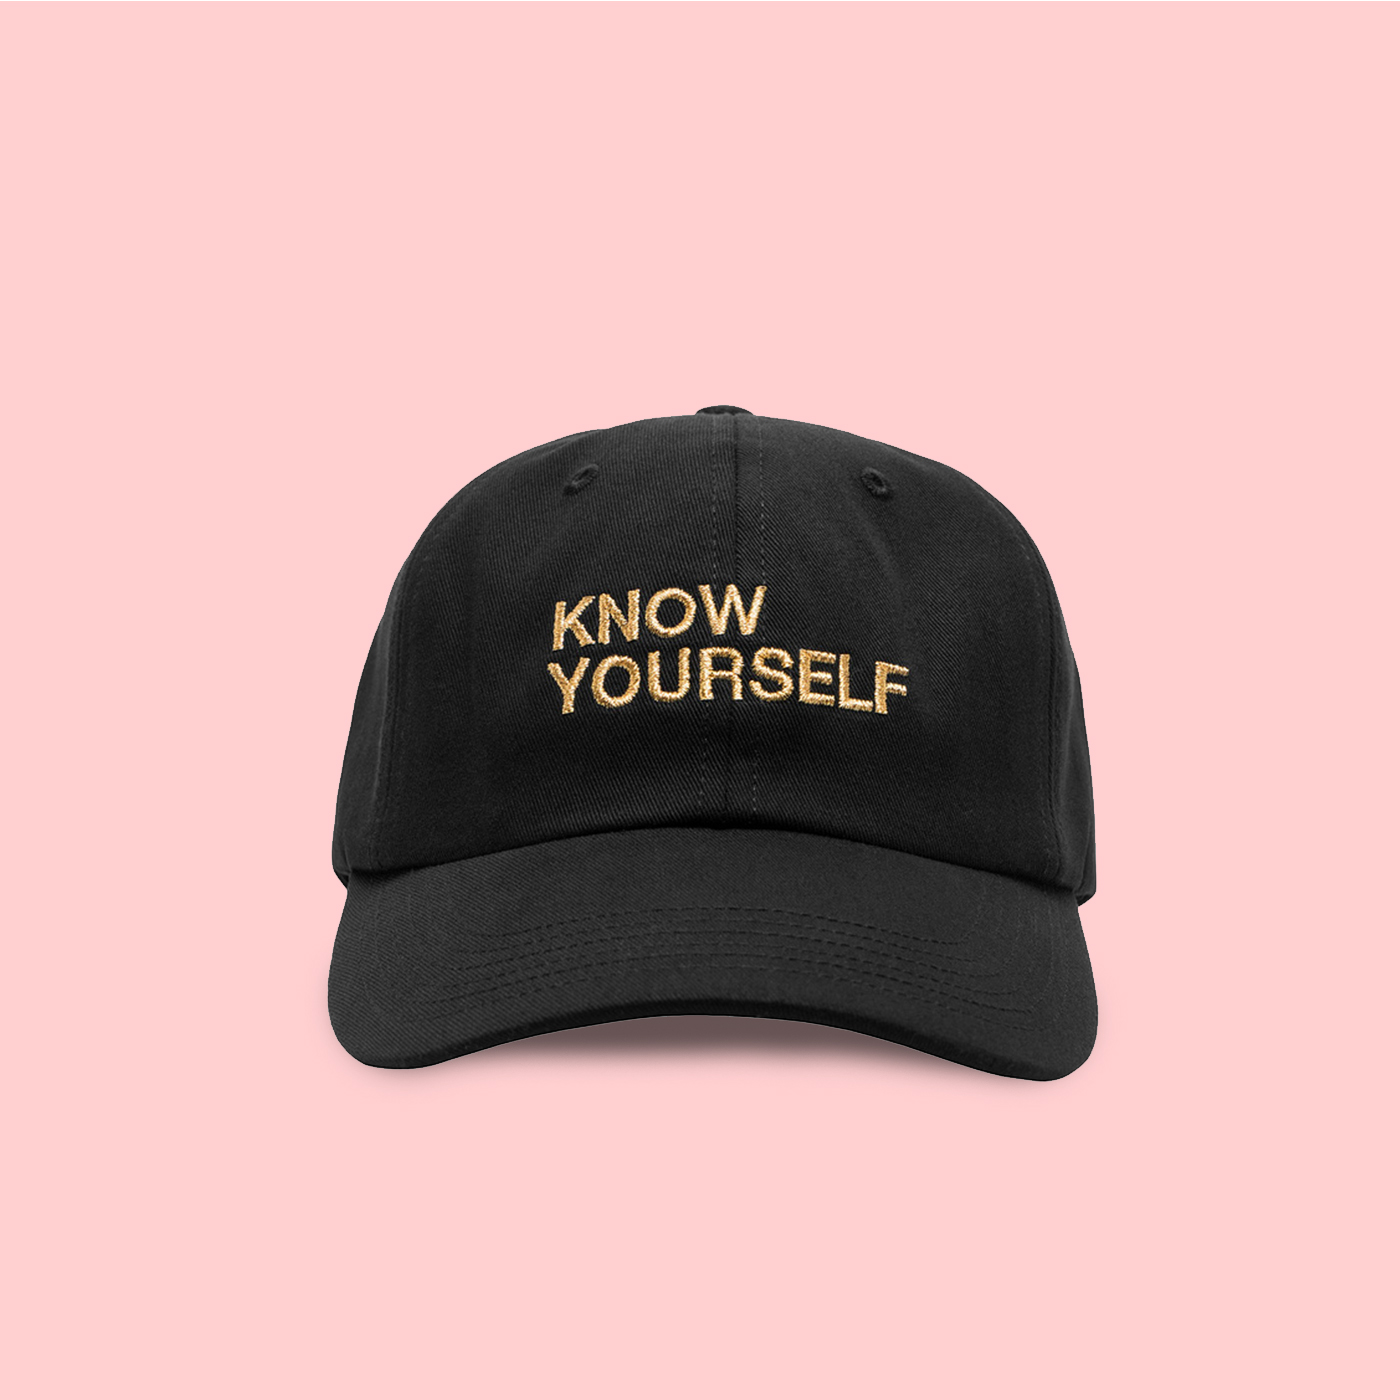 2ec495b6f27 UNISEX KNOW YOURSELF BASEBALL CAP IN BLACK · soldrelax · Online ...